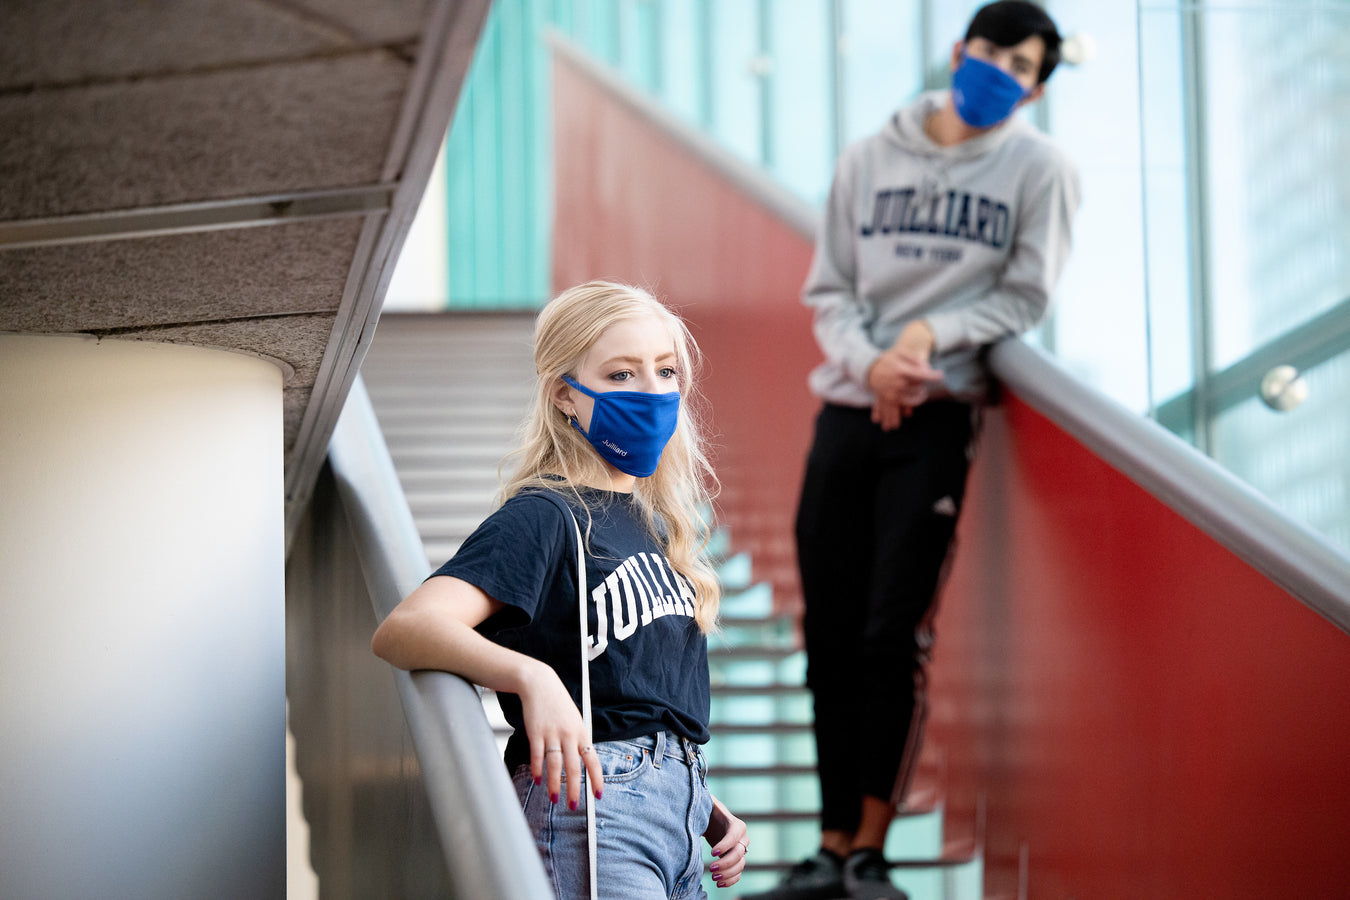 Juilliard students wearing masks and social distancing